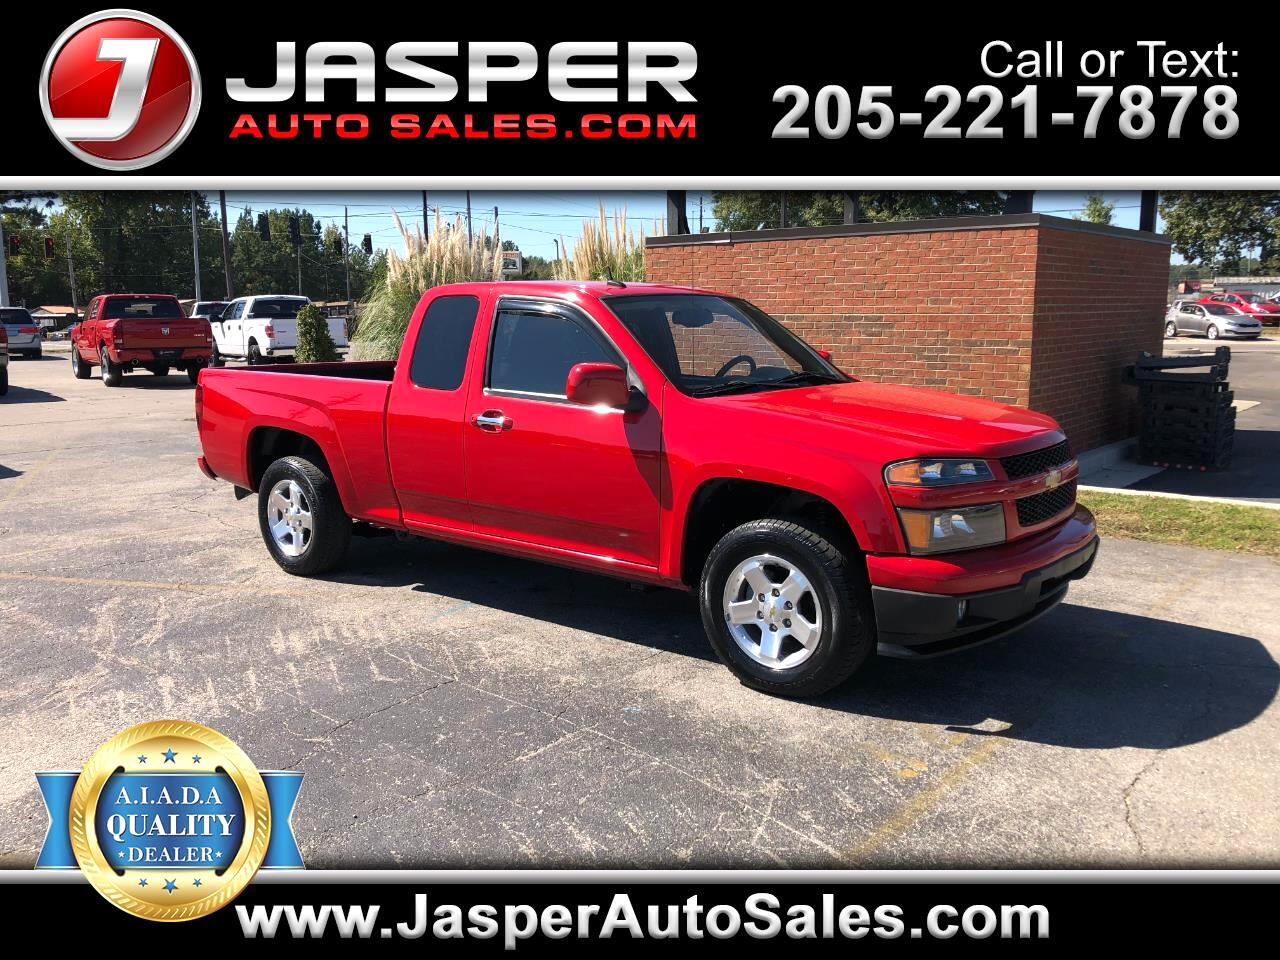 Chevrolet Colorado 2WD Ext Cab LT w/1LT 2012